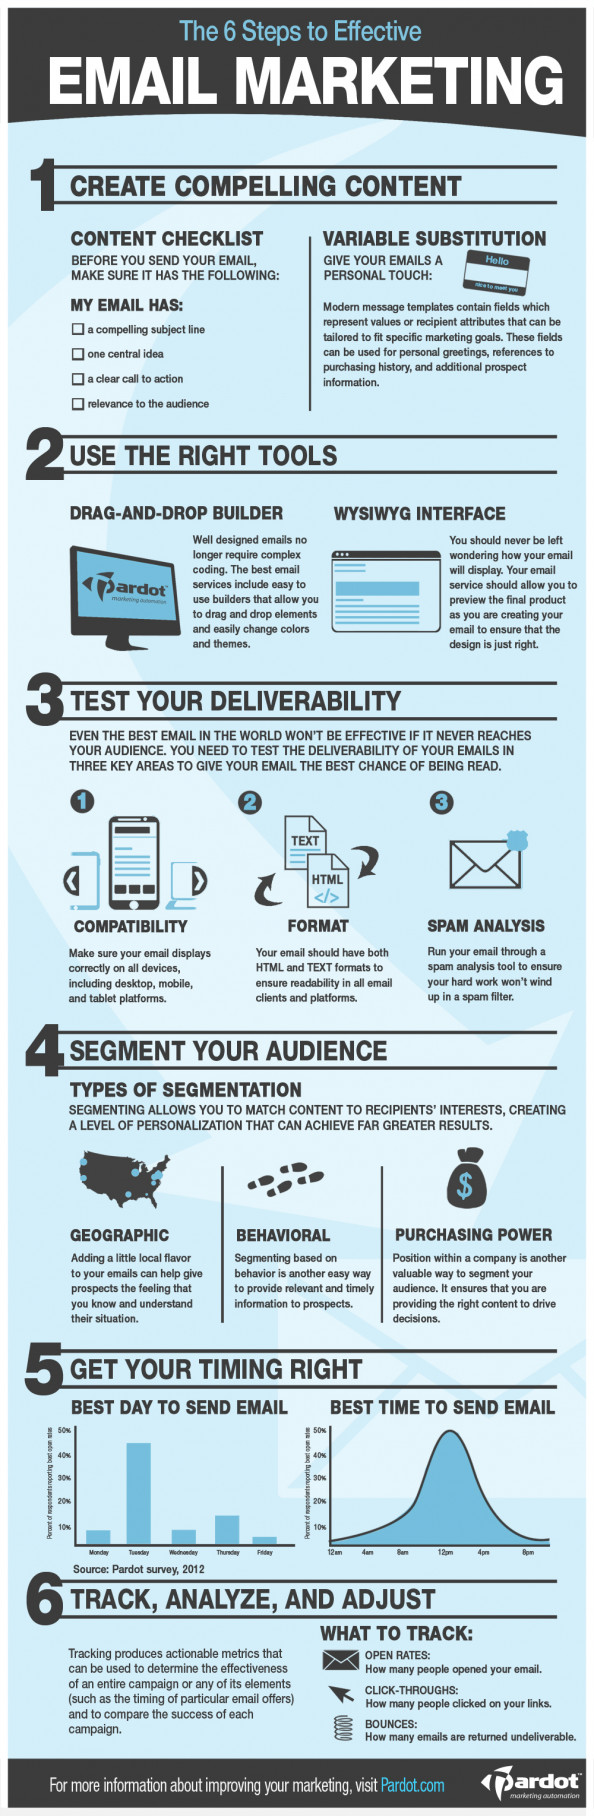 6 Steps to Effective Email Marketing